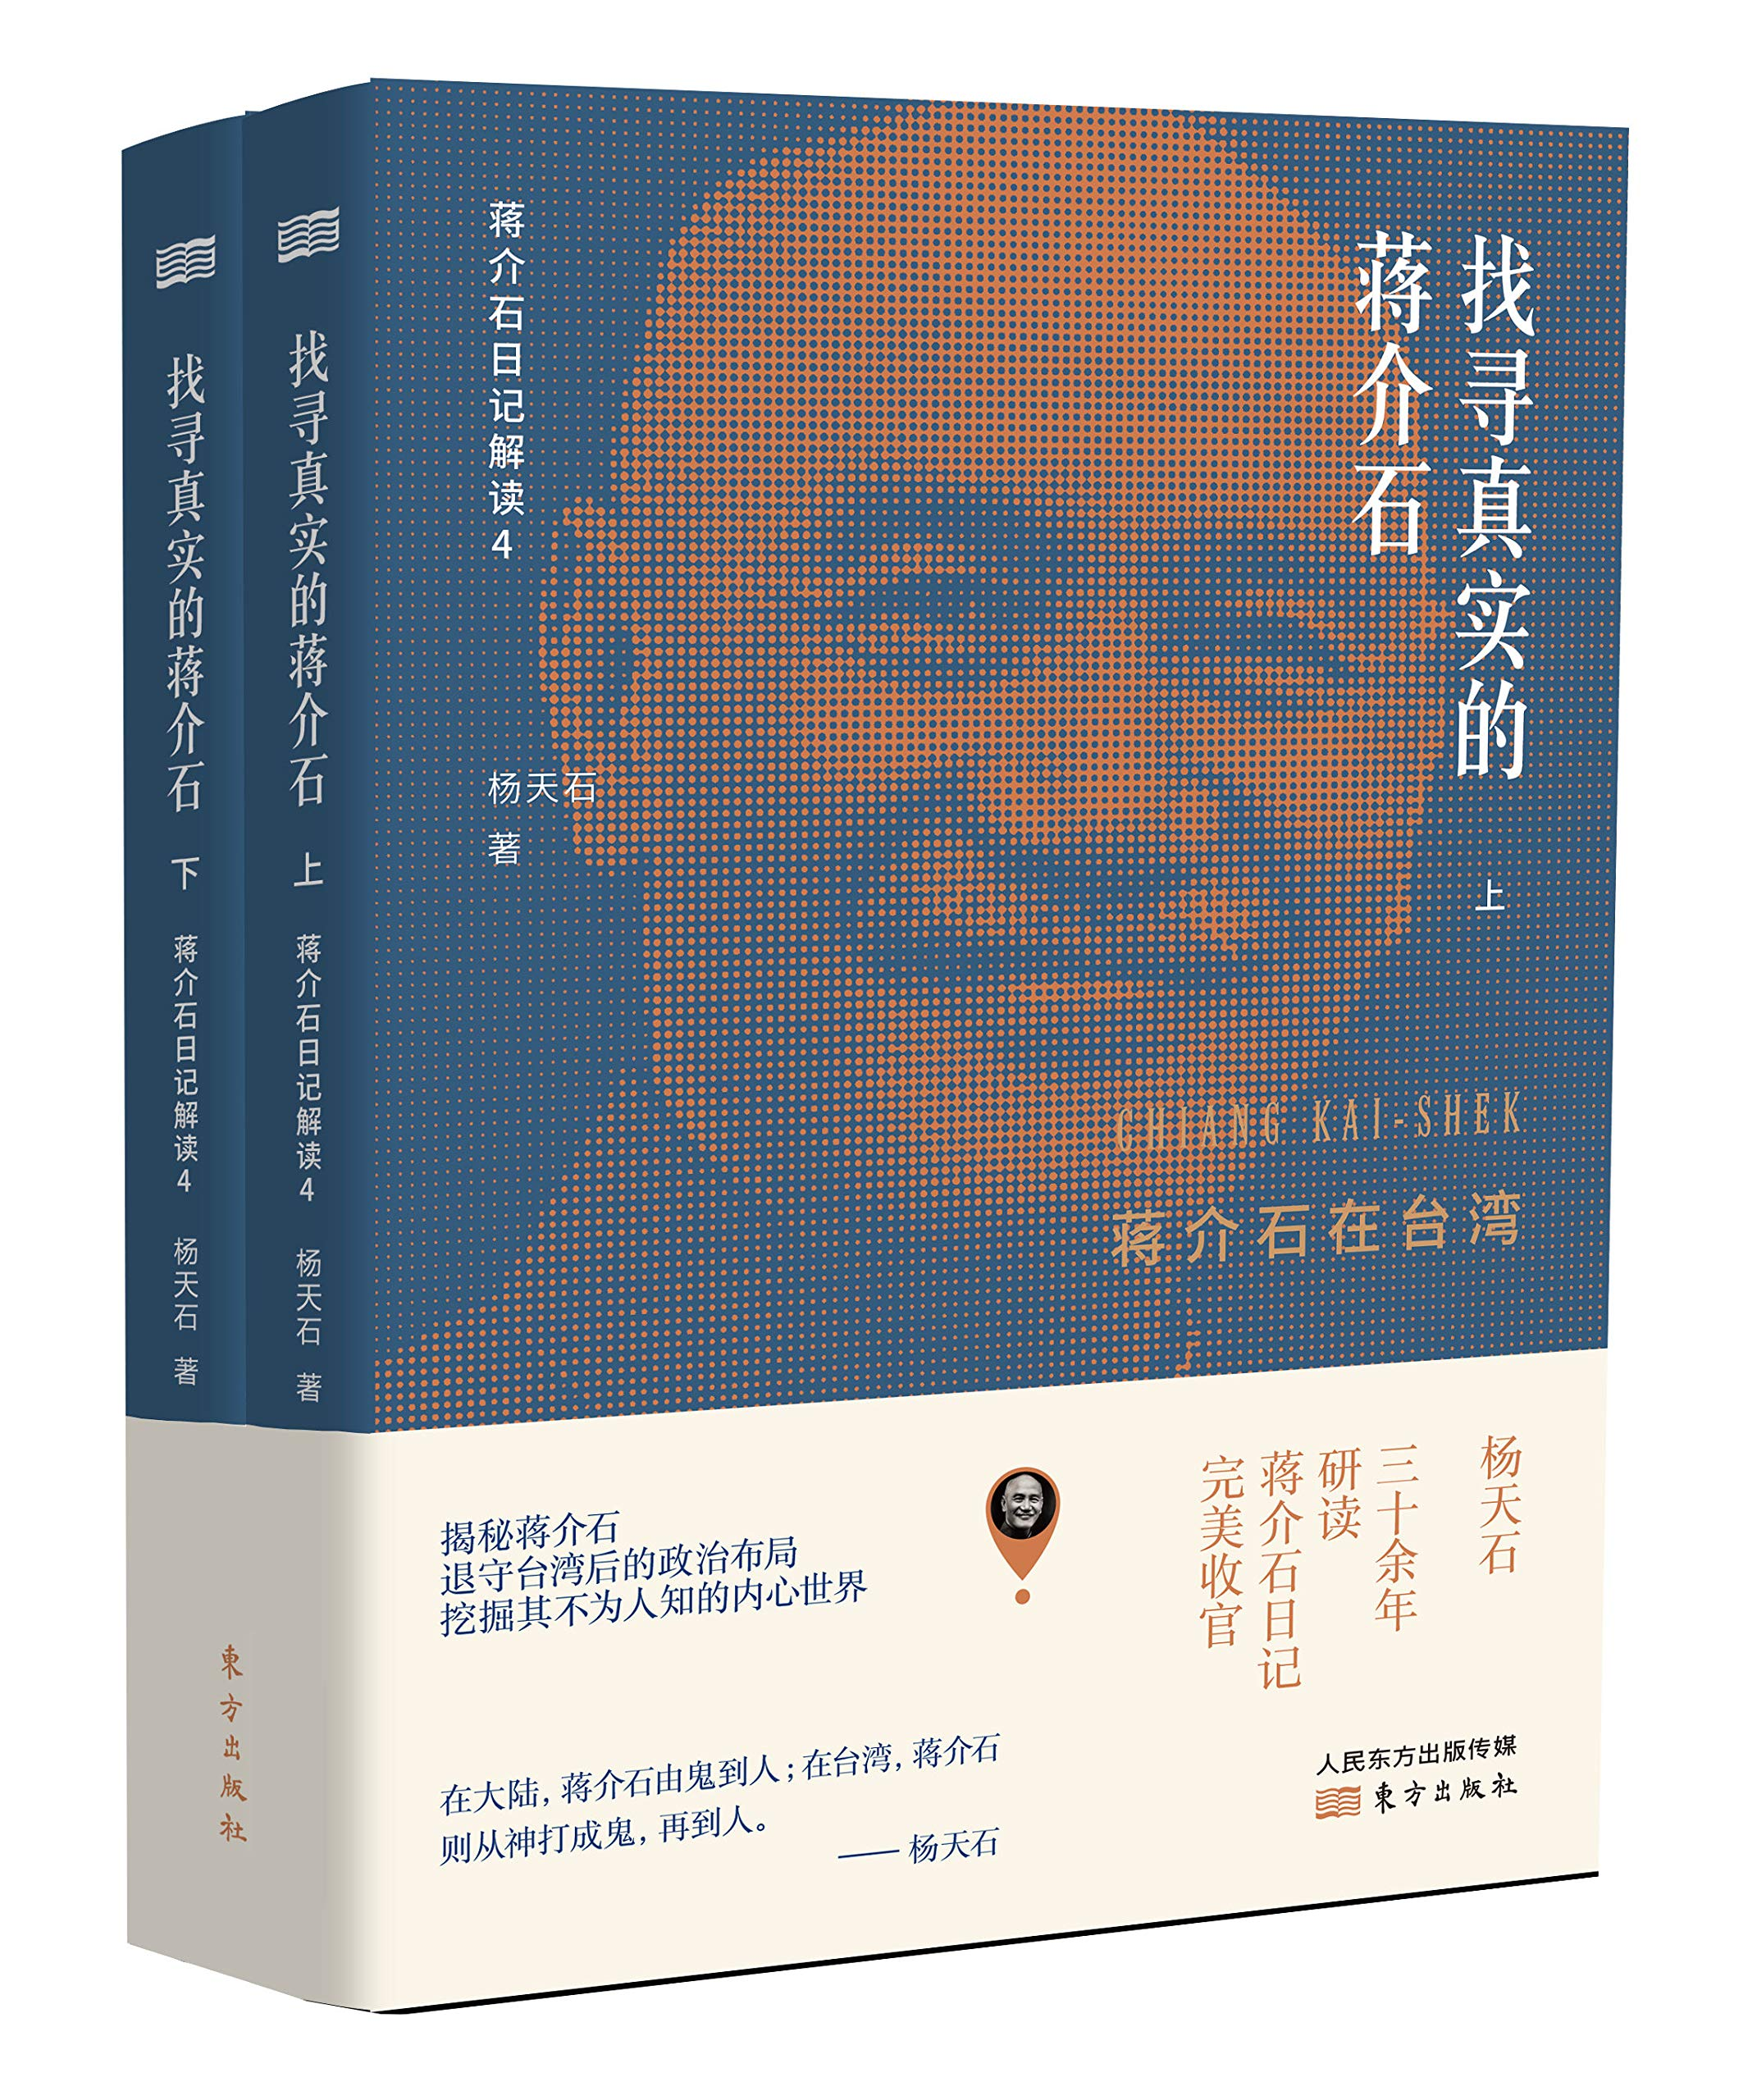 Looking For The Real Chiang Kai-shek: Interpretation Of Chiang Kai-shek's Diaries 4 (Part I And Part II)